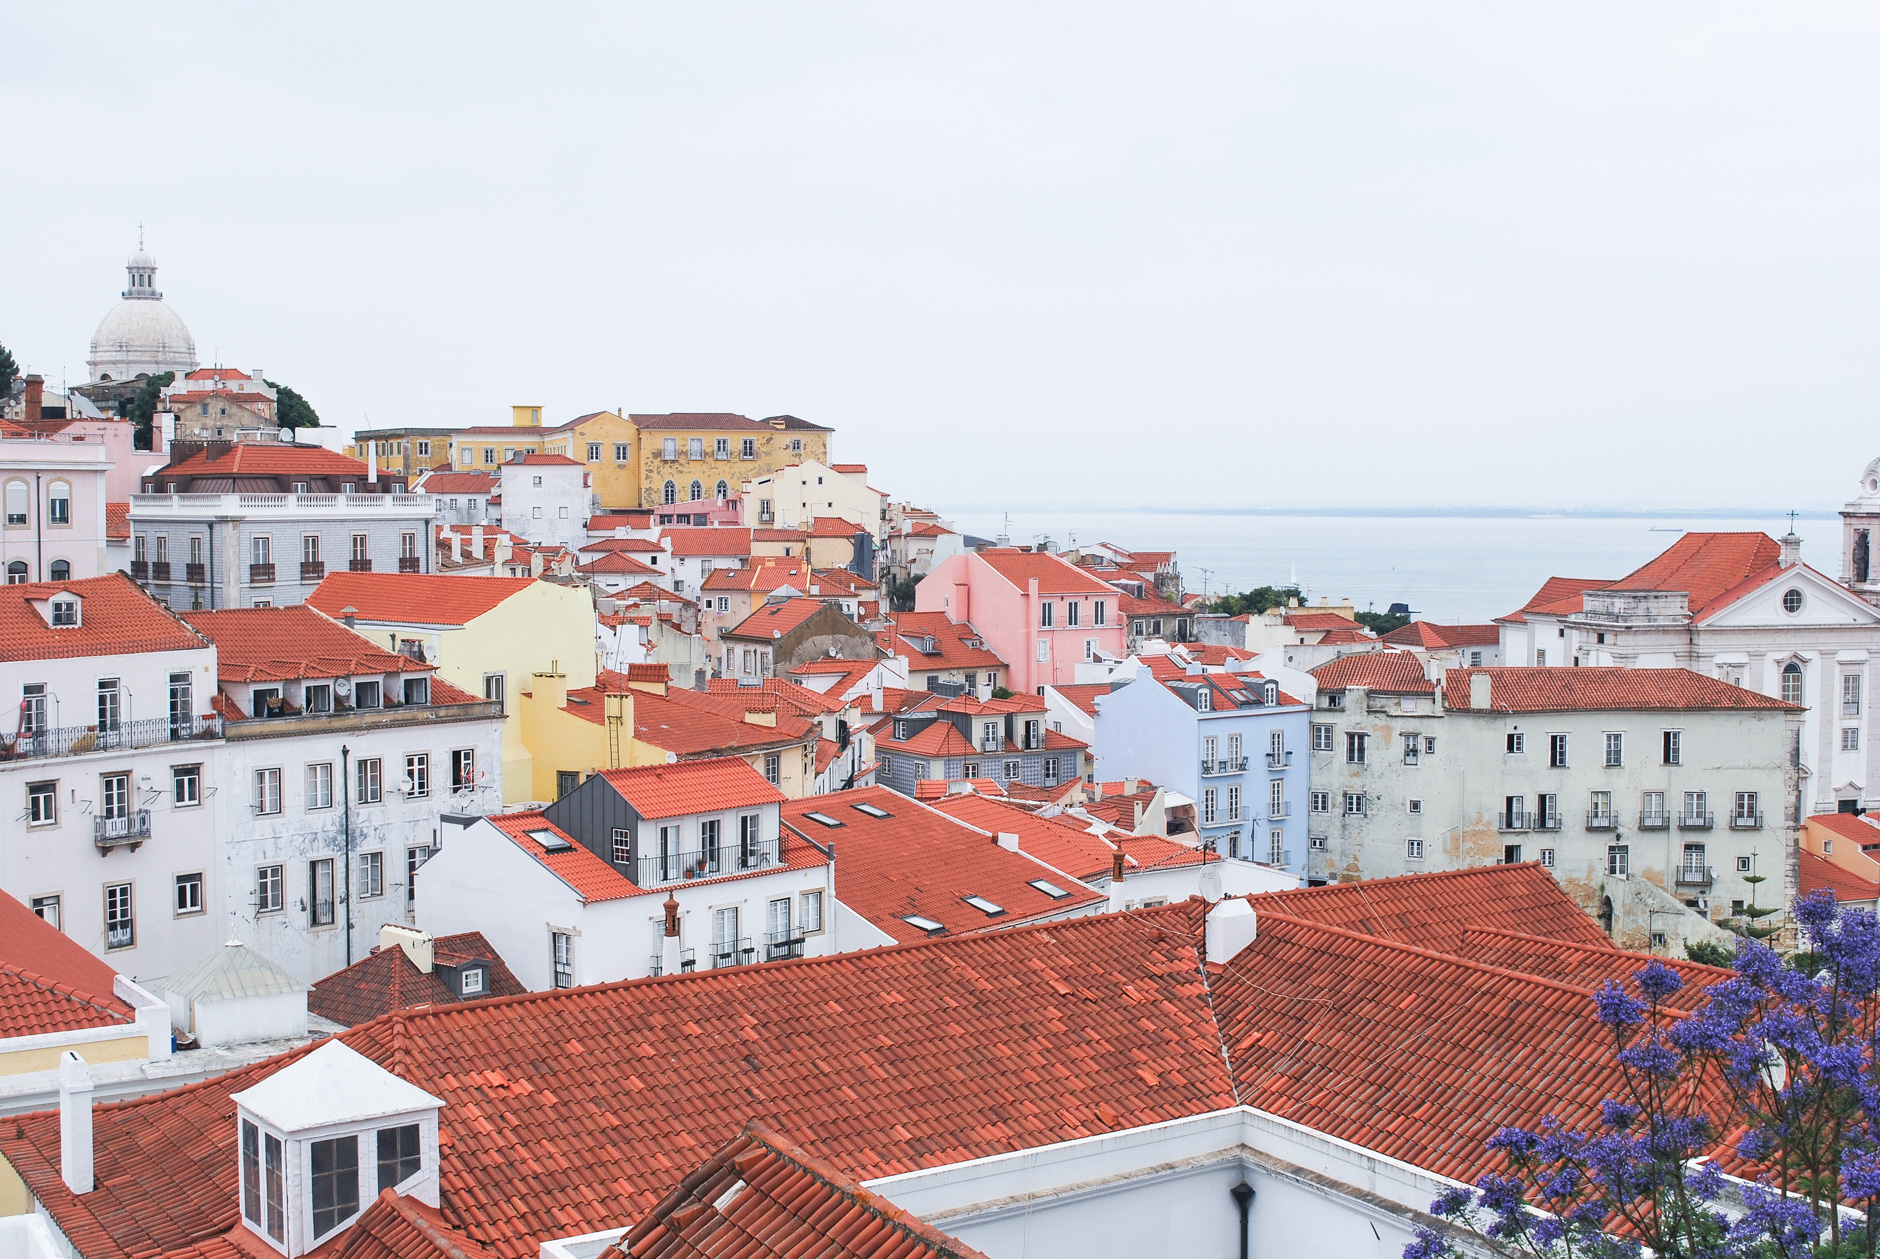 Traveling to Lisbon, Portugal? Here's my travel guide on where to stay, what to see, what to do, how to get around, and where to eat.